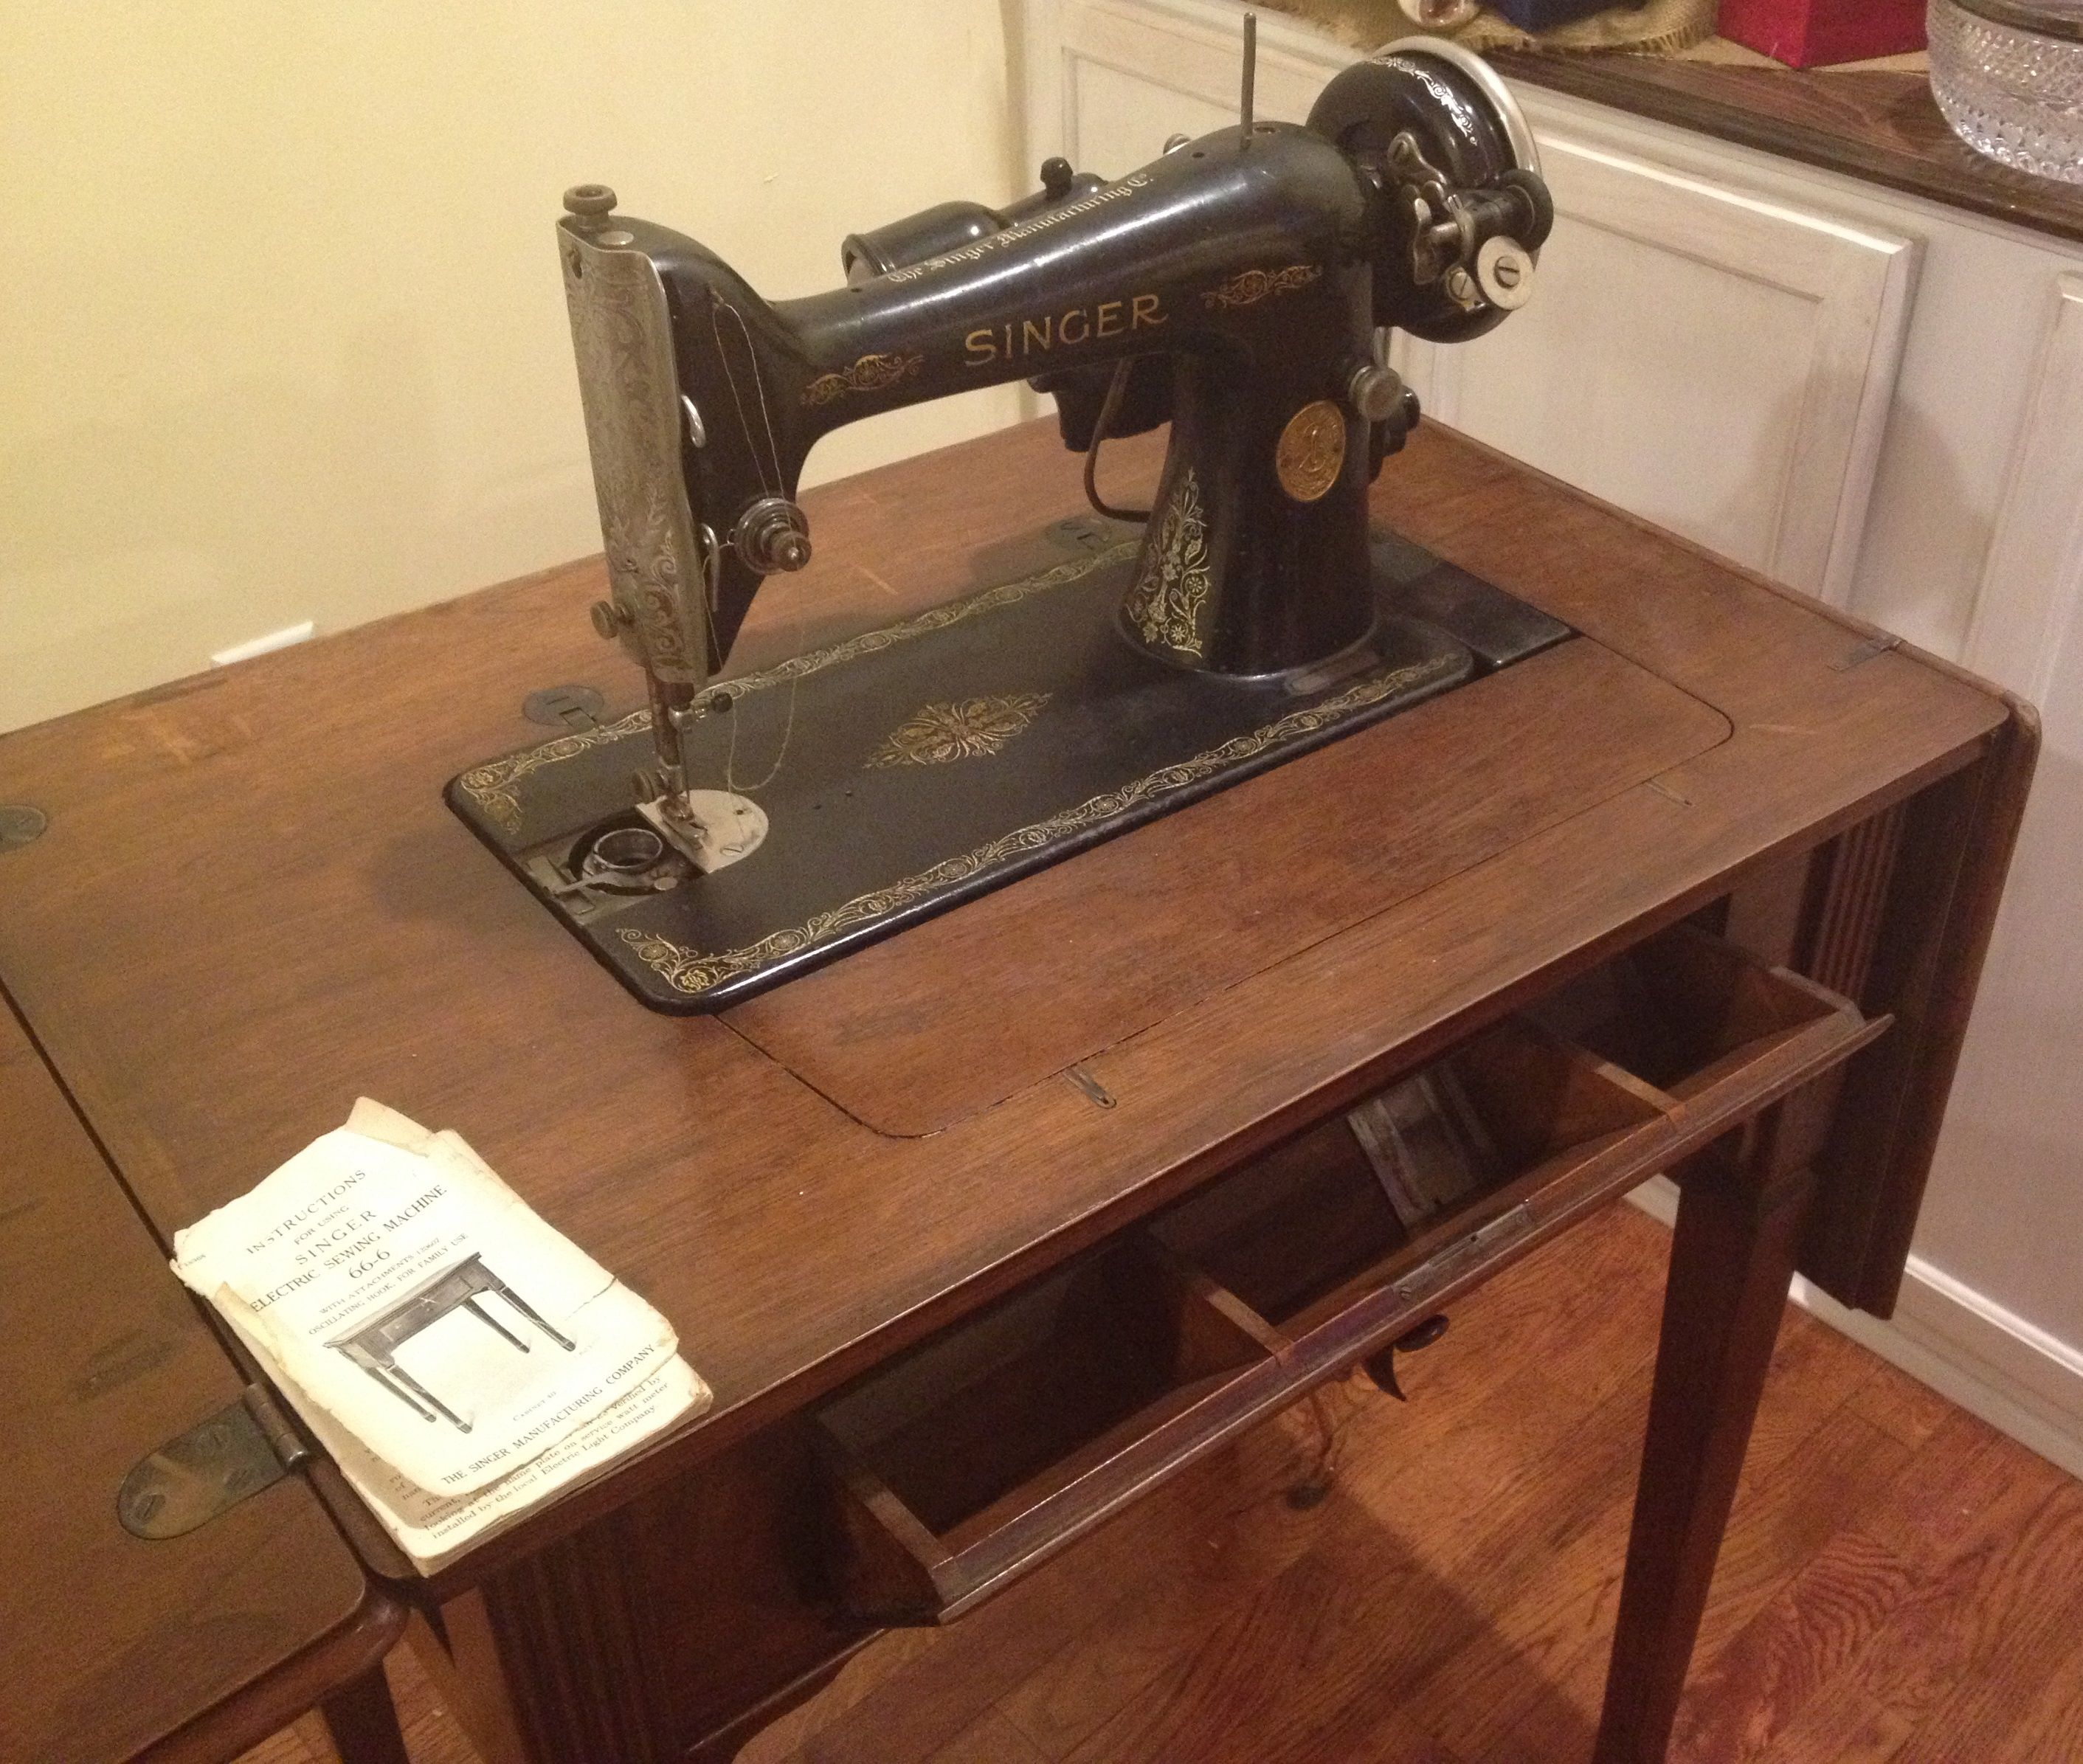 1928 Singer Sewing Machine and Table- $400 | Antiques | Pinterest ...